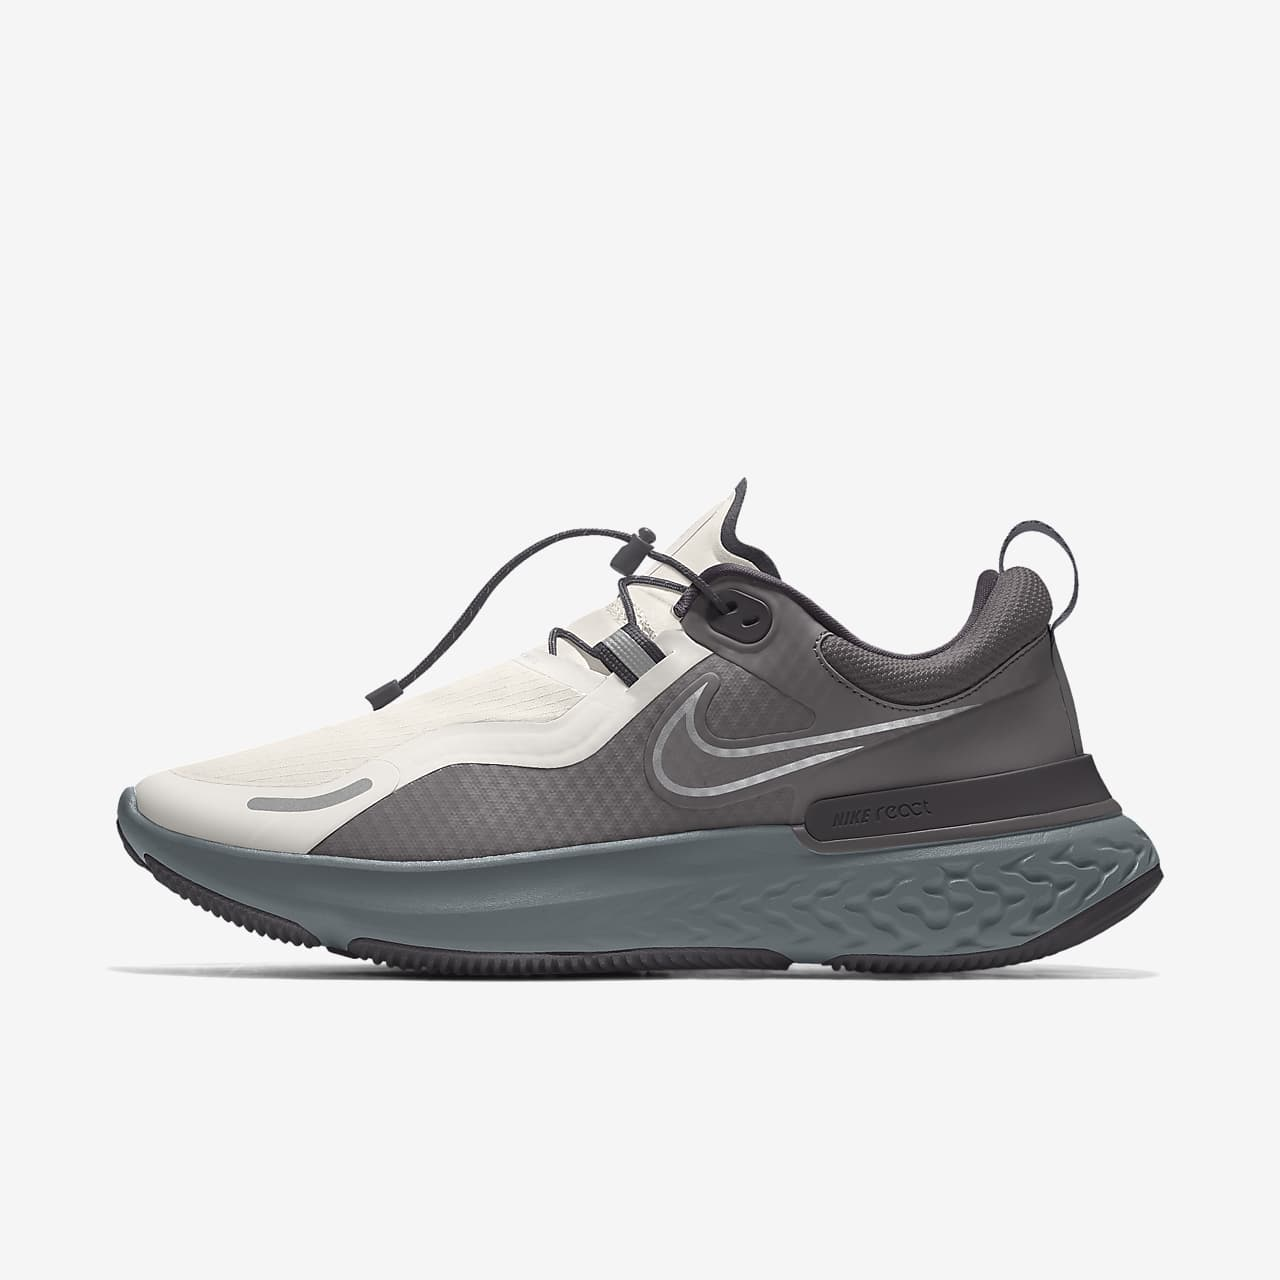 Nike React Miler Shield By You Custom Running Shoe